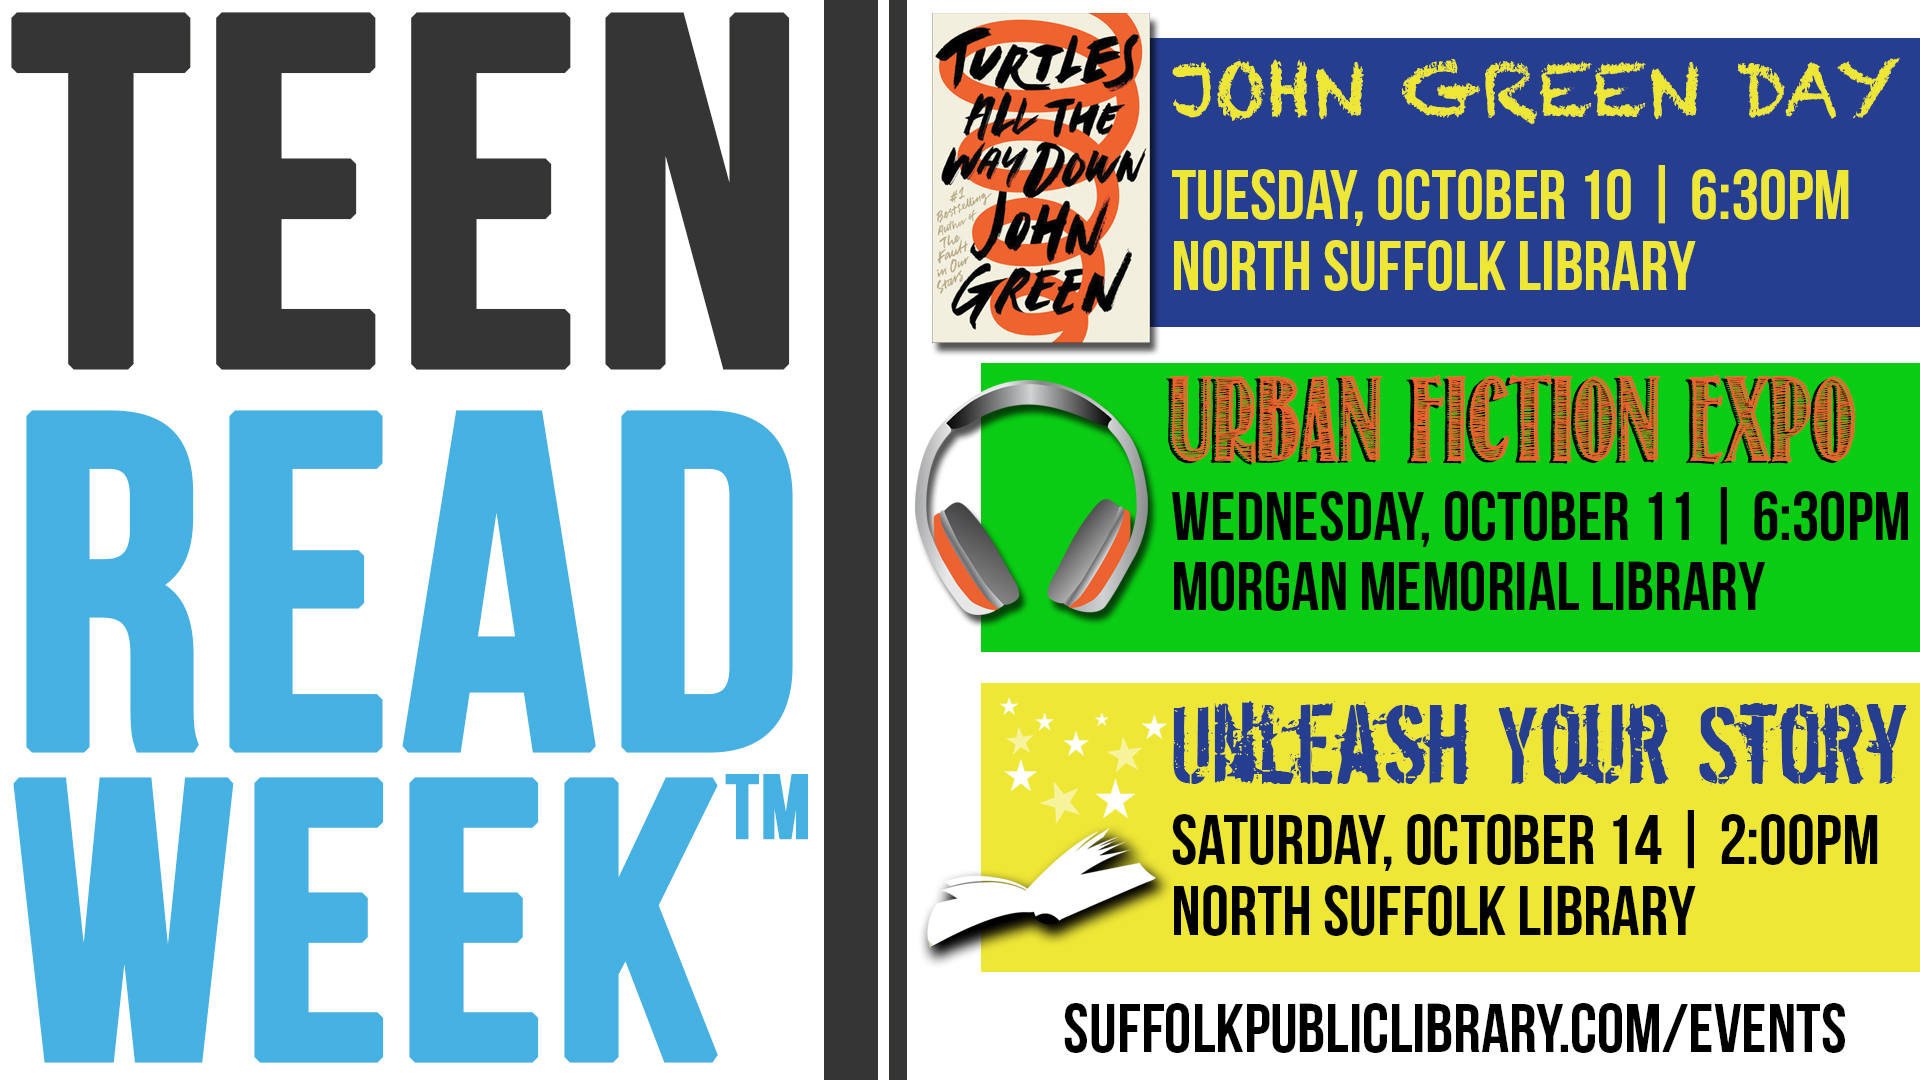 Teen Reads Week: John Green Day